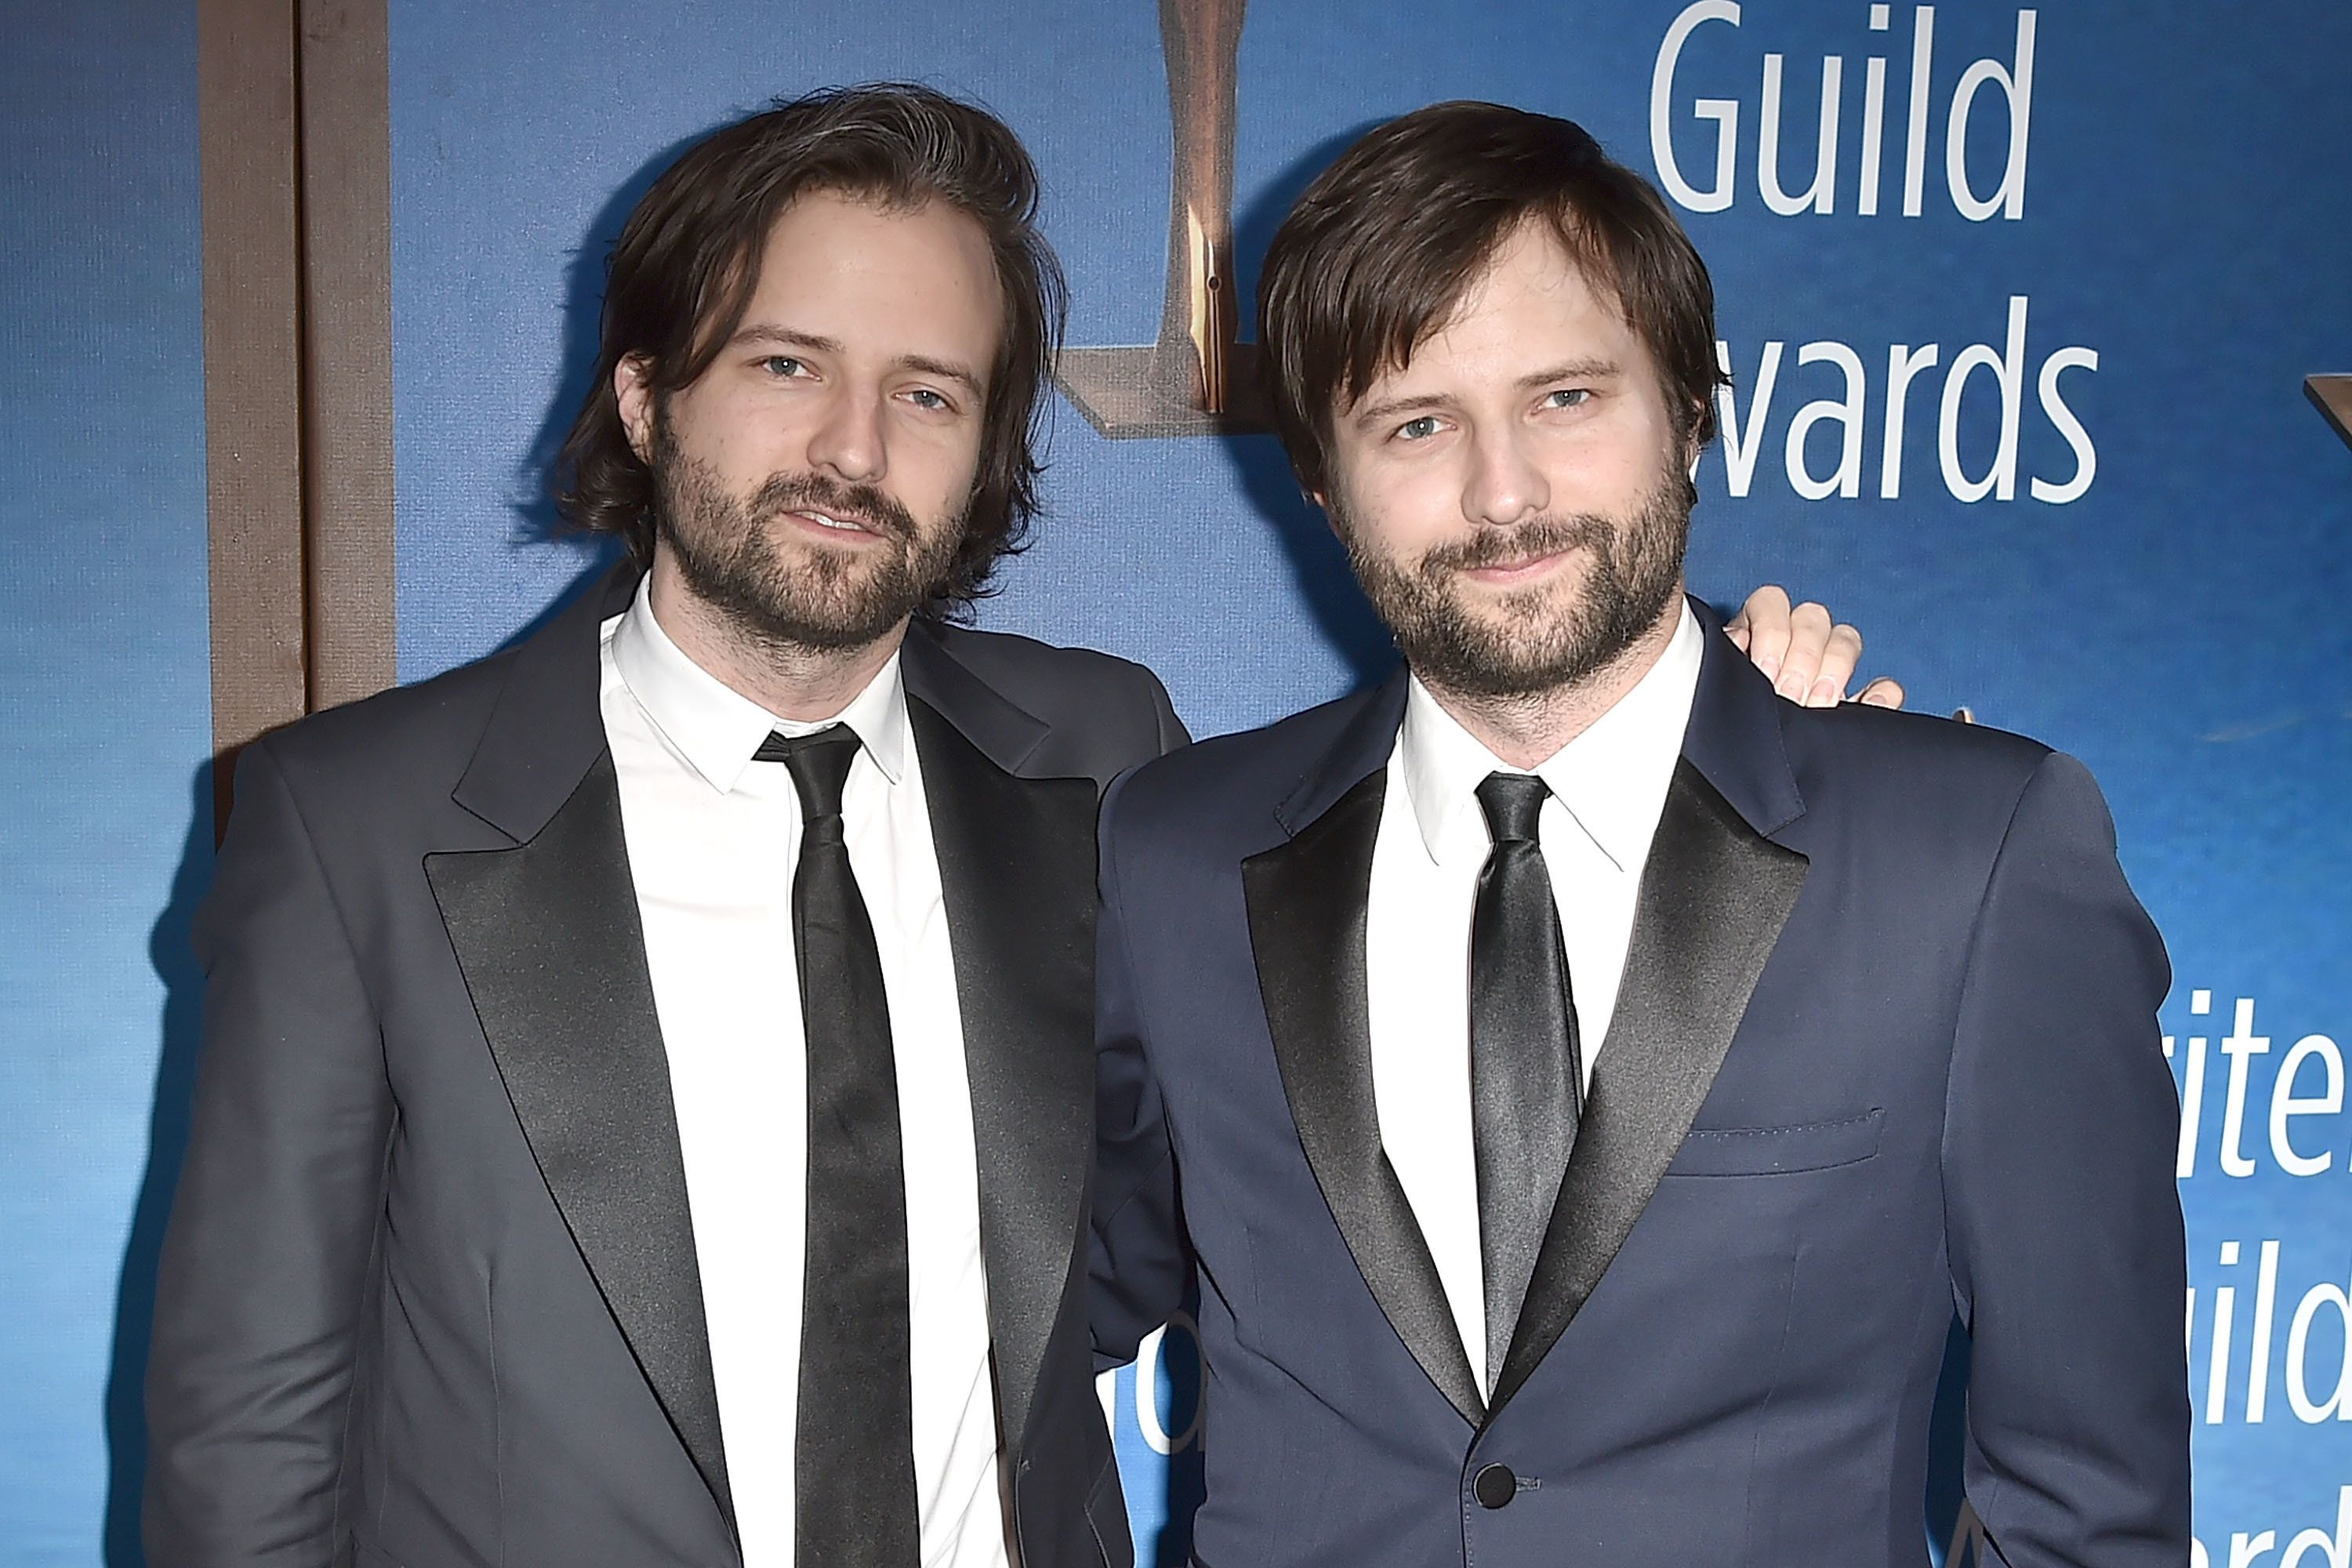 BEVERLY HILLS, CA - FEBRUARY 11:  Ross Duffer and Matt Duffer attend the 2018 Writers Guild Awards L.A. Ceremony at The Beverly Hilton Hotel on February 11, 2018 in Beverly Hills, California.  (Photo by David Crotty/Patrick McMullan via Getty Images)